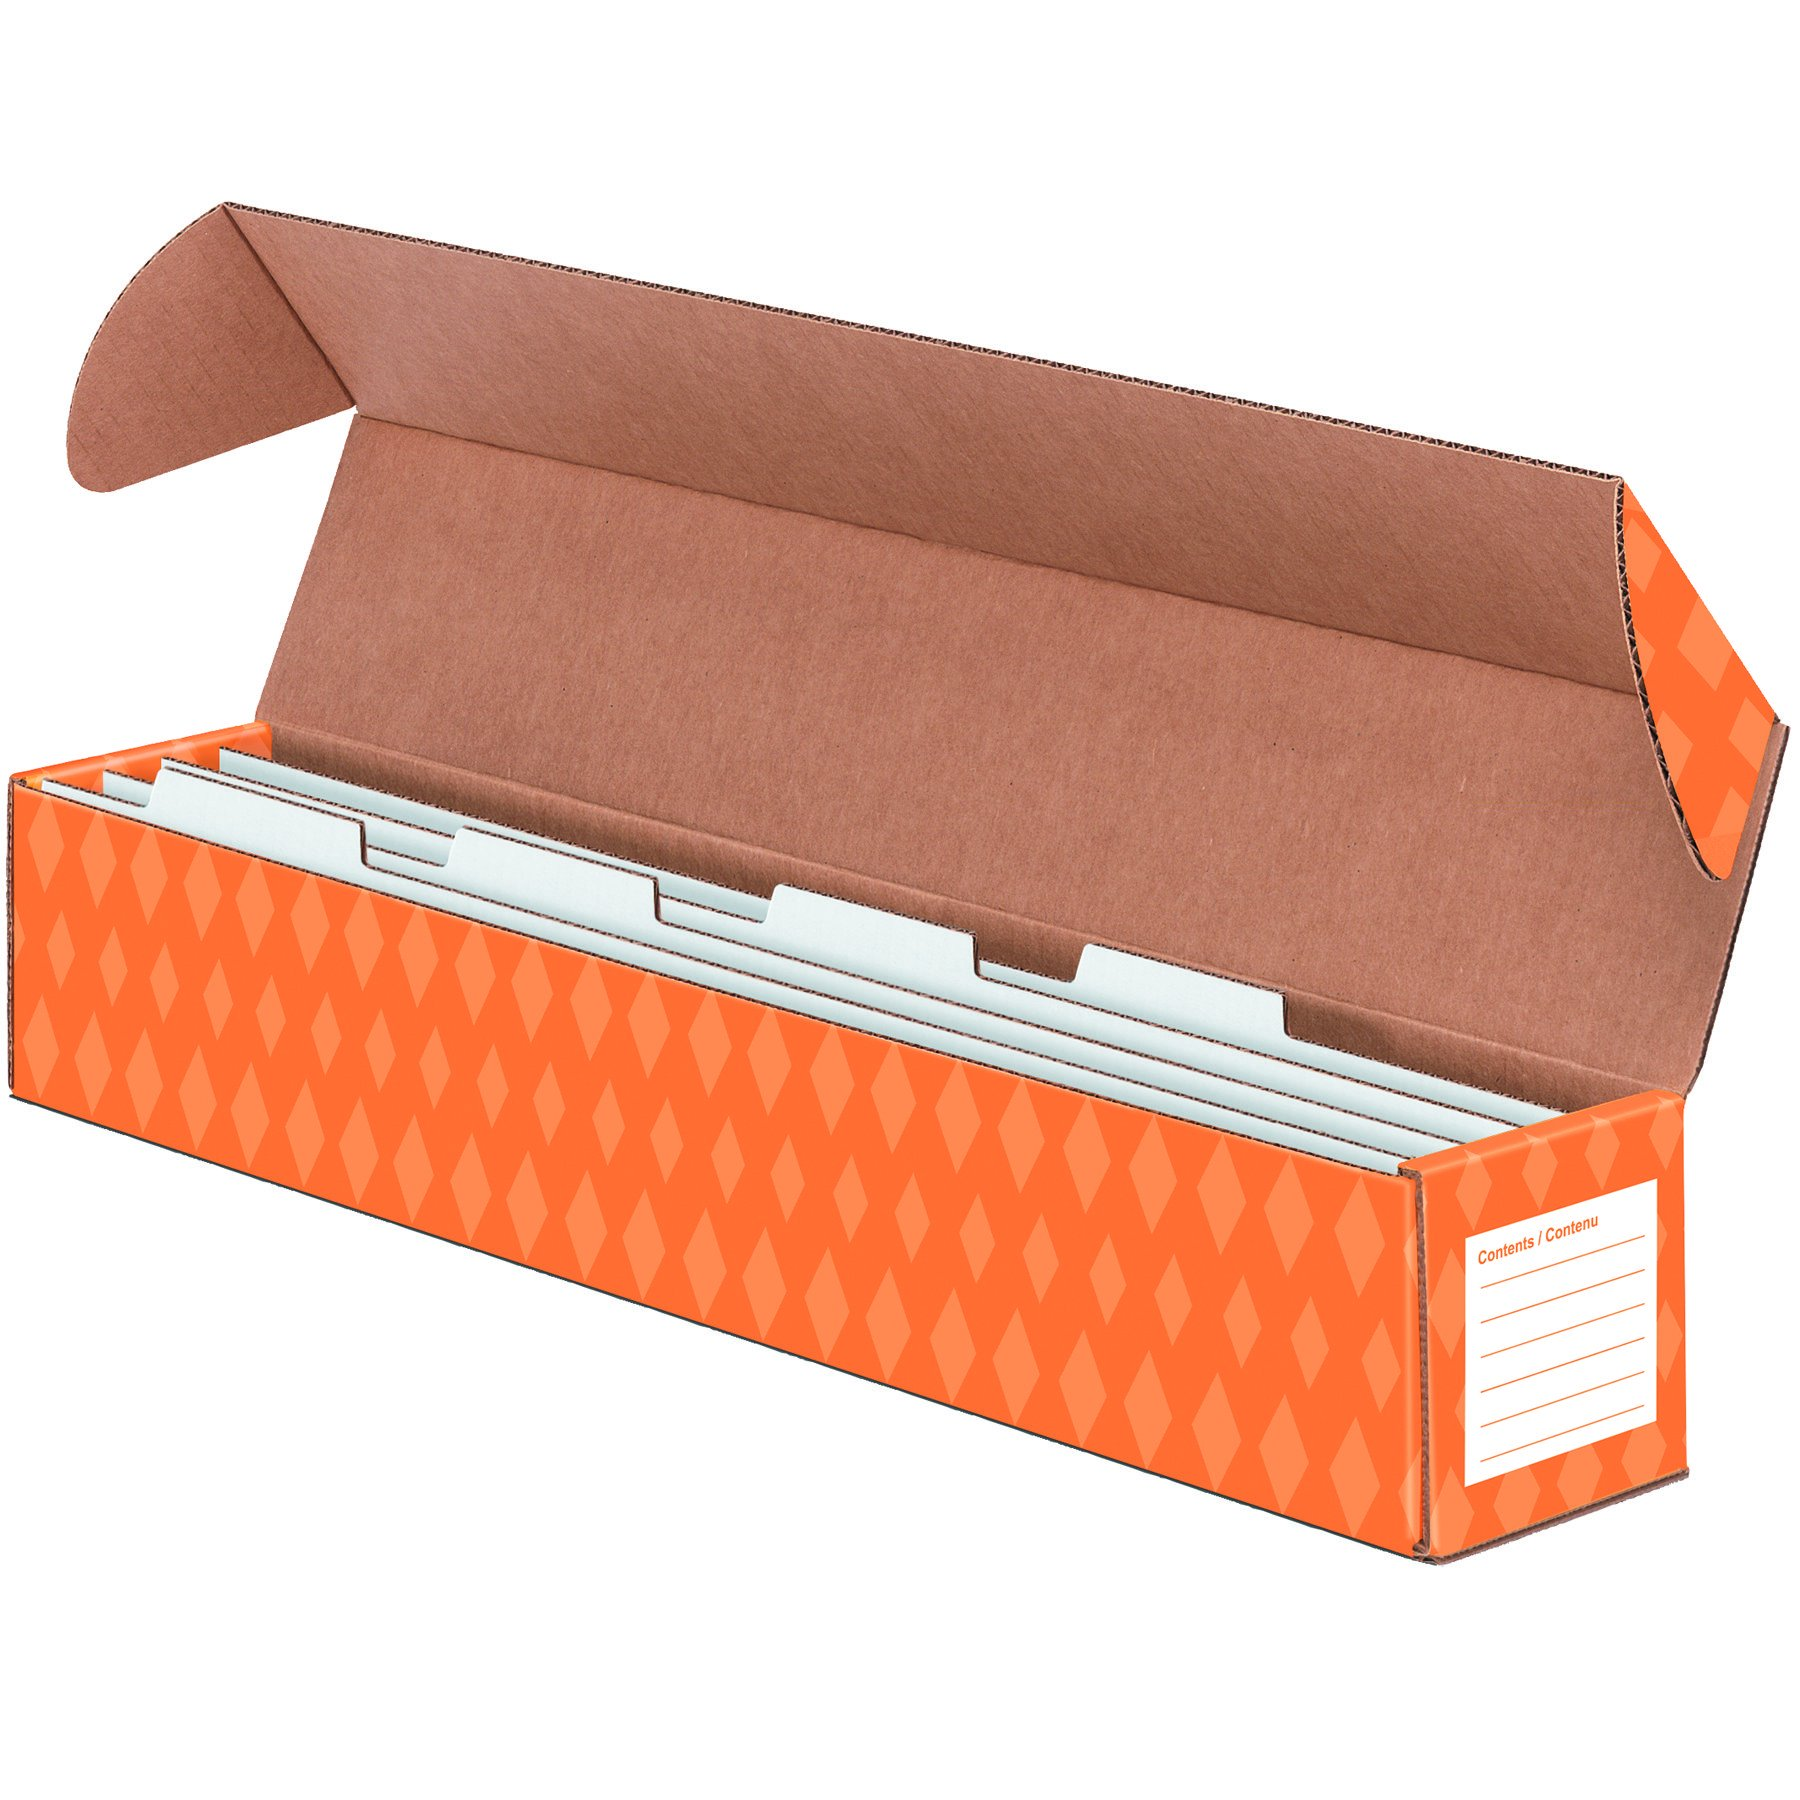 Bankers Box Classroom Sentence Strip Storage Box with 4 Dividers 4.13 x 25.50 x 4.13(3380401)